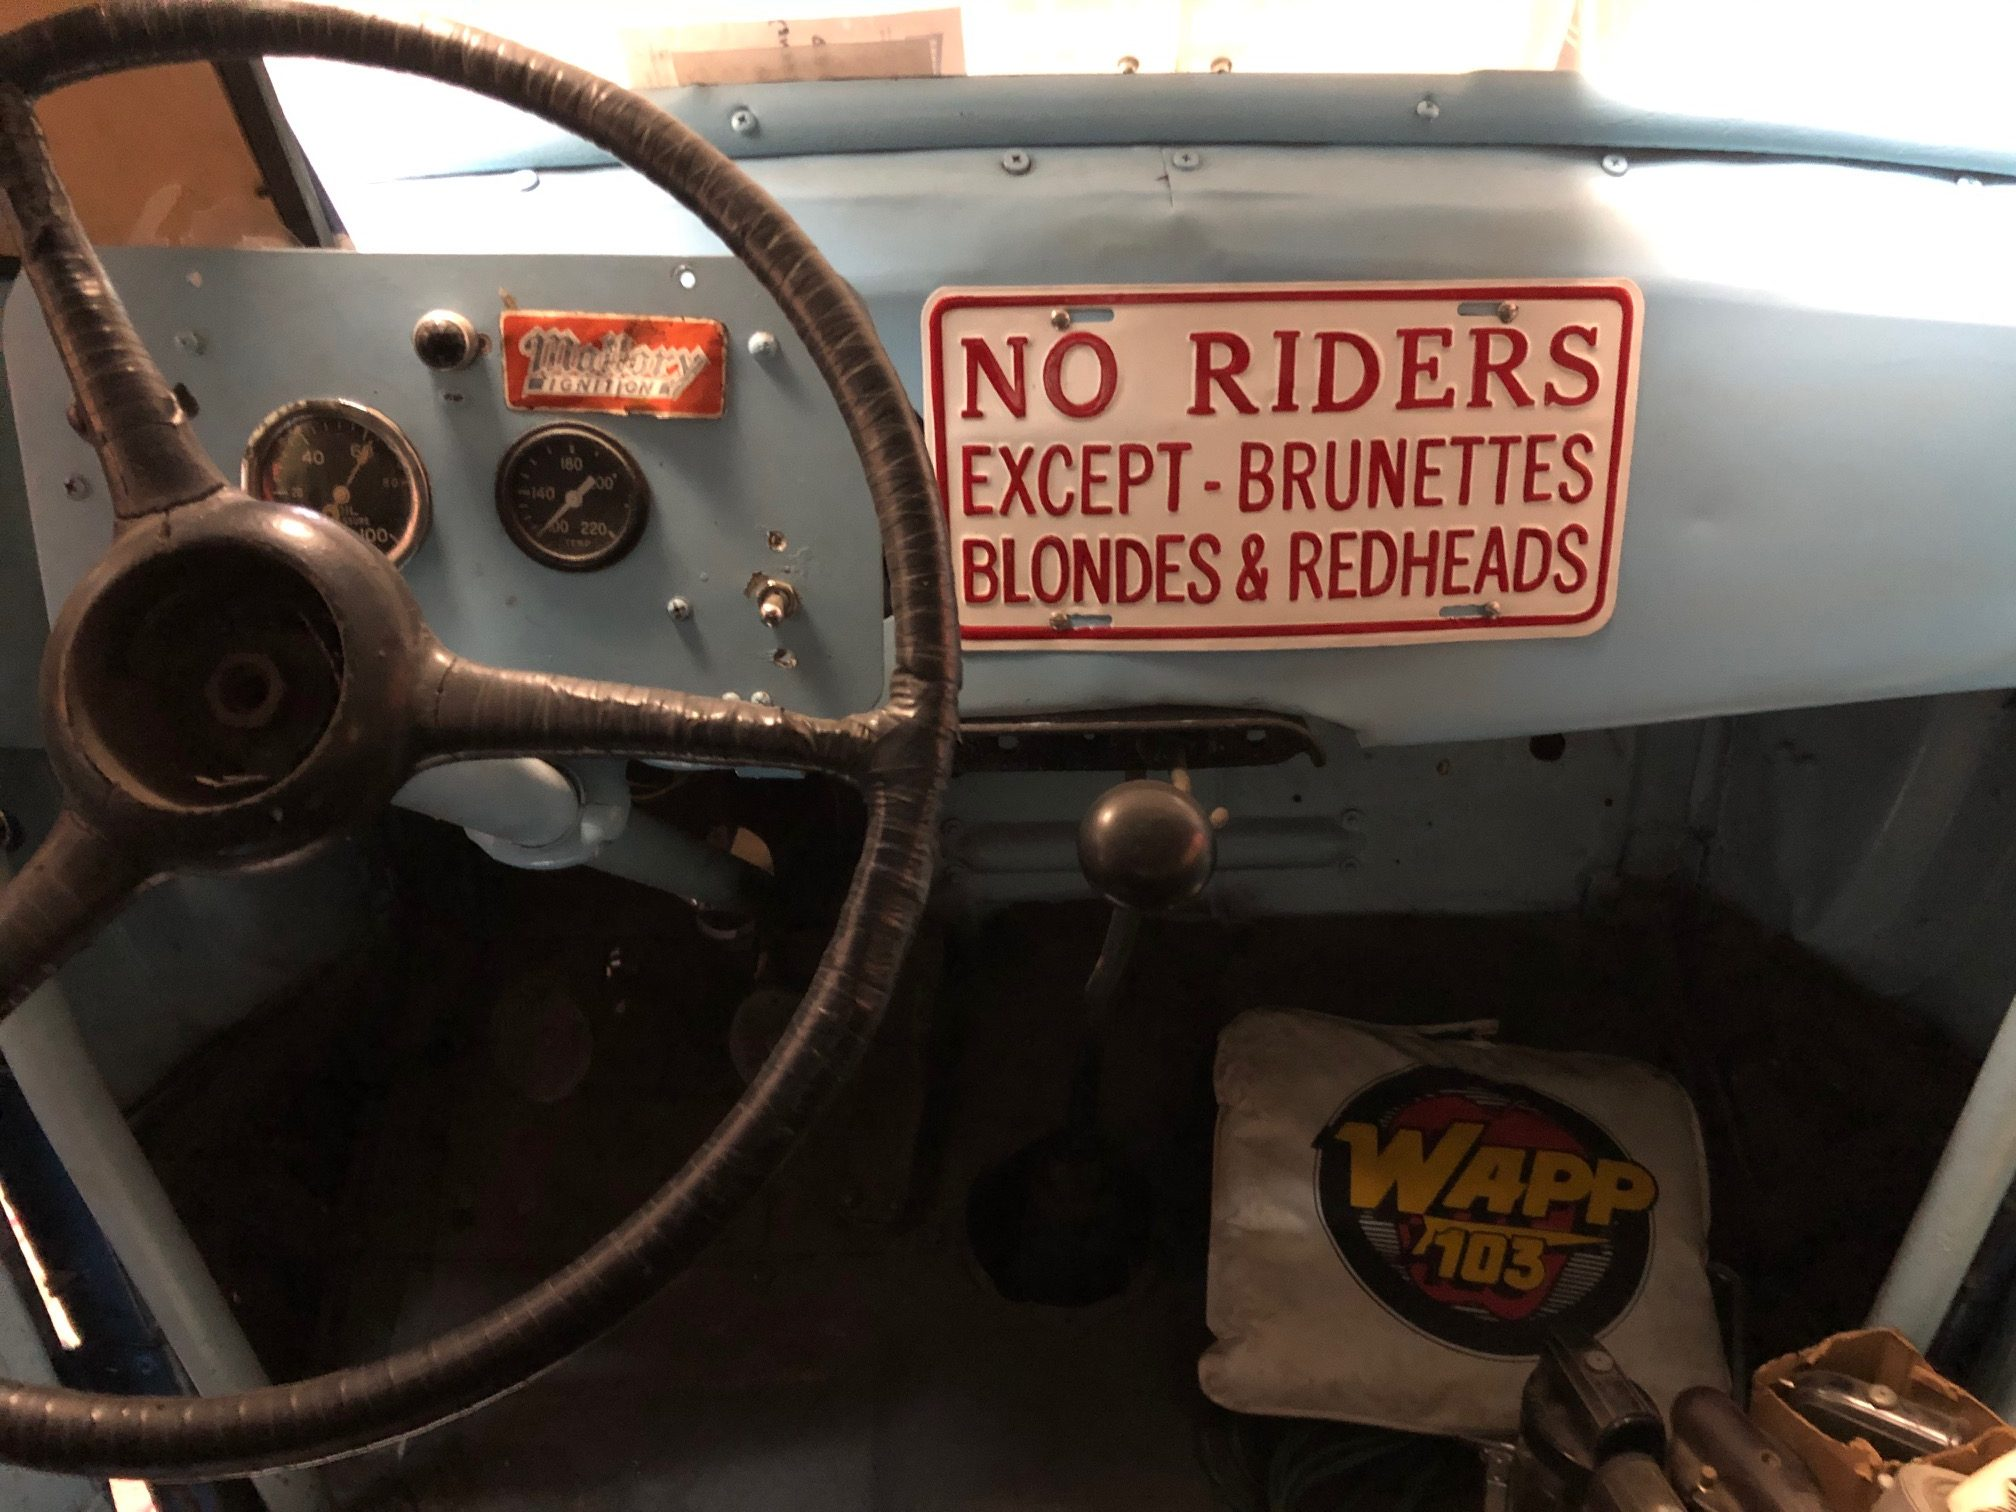 Himes Museum racer car interior riders funny sign